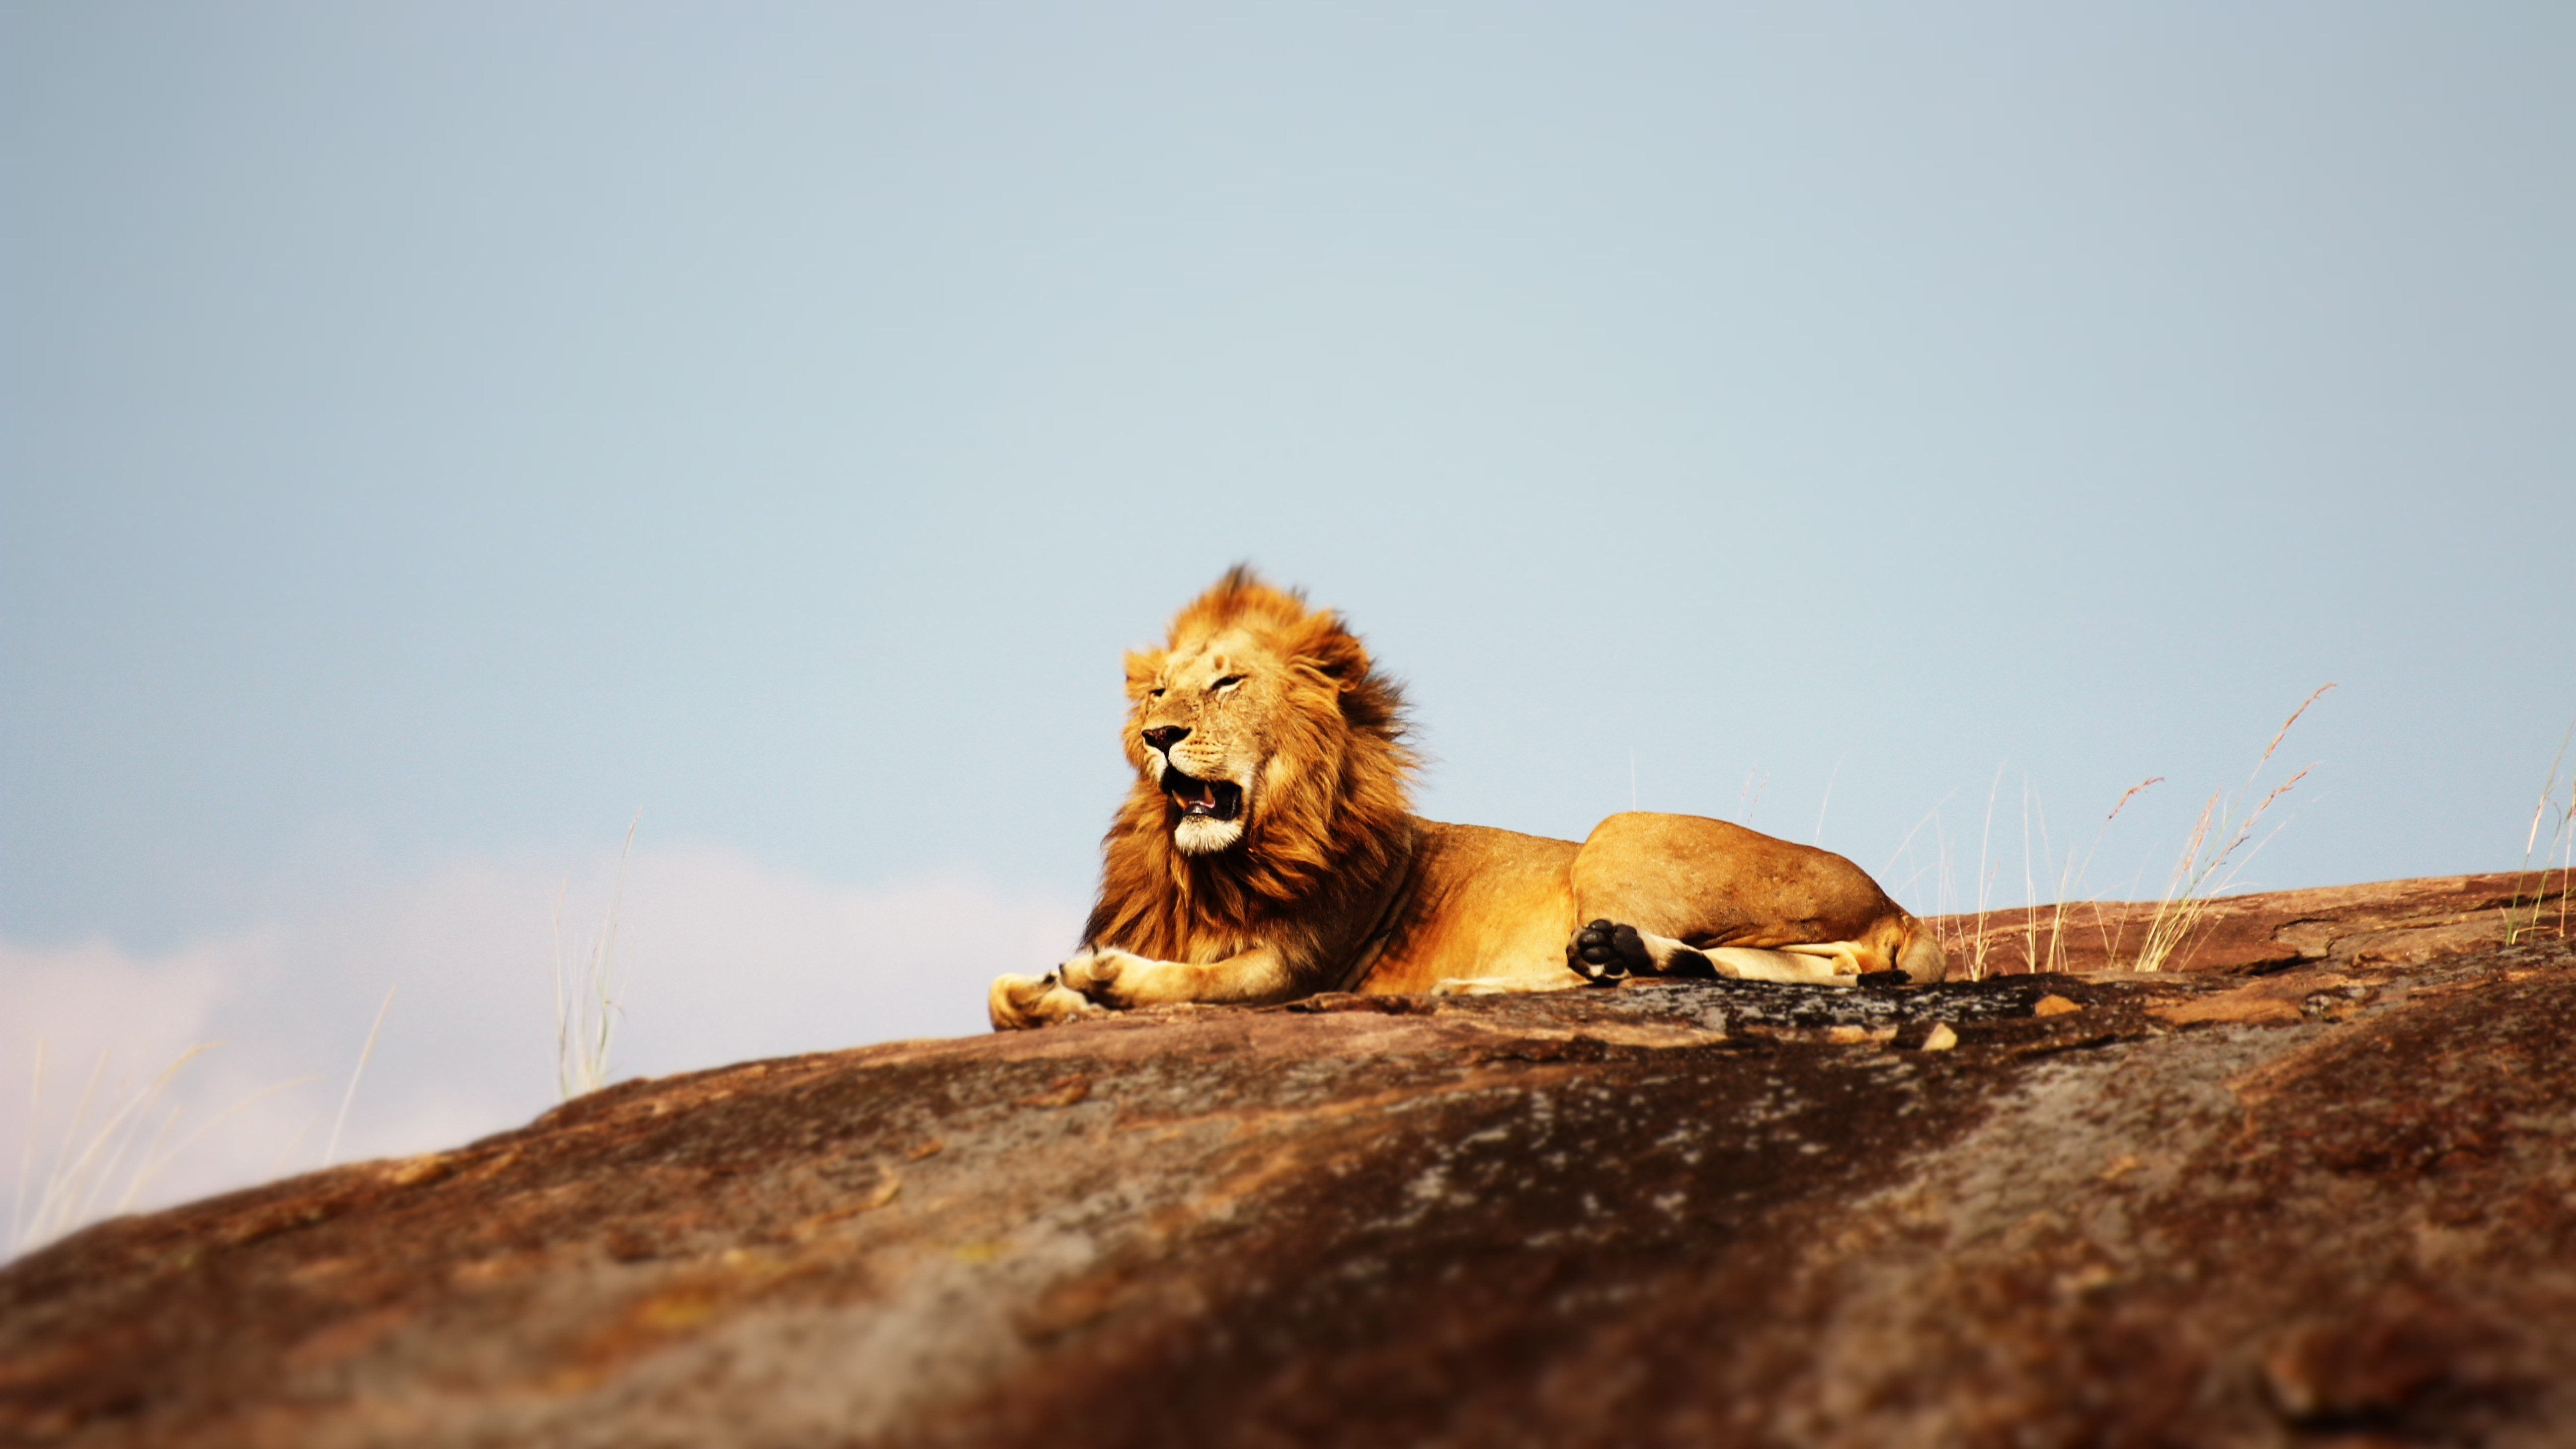 Download wallpaper: Lion in Serengeti National Park 5120x2880